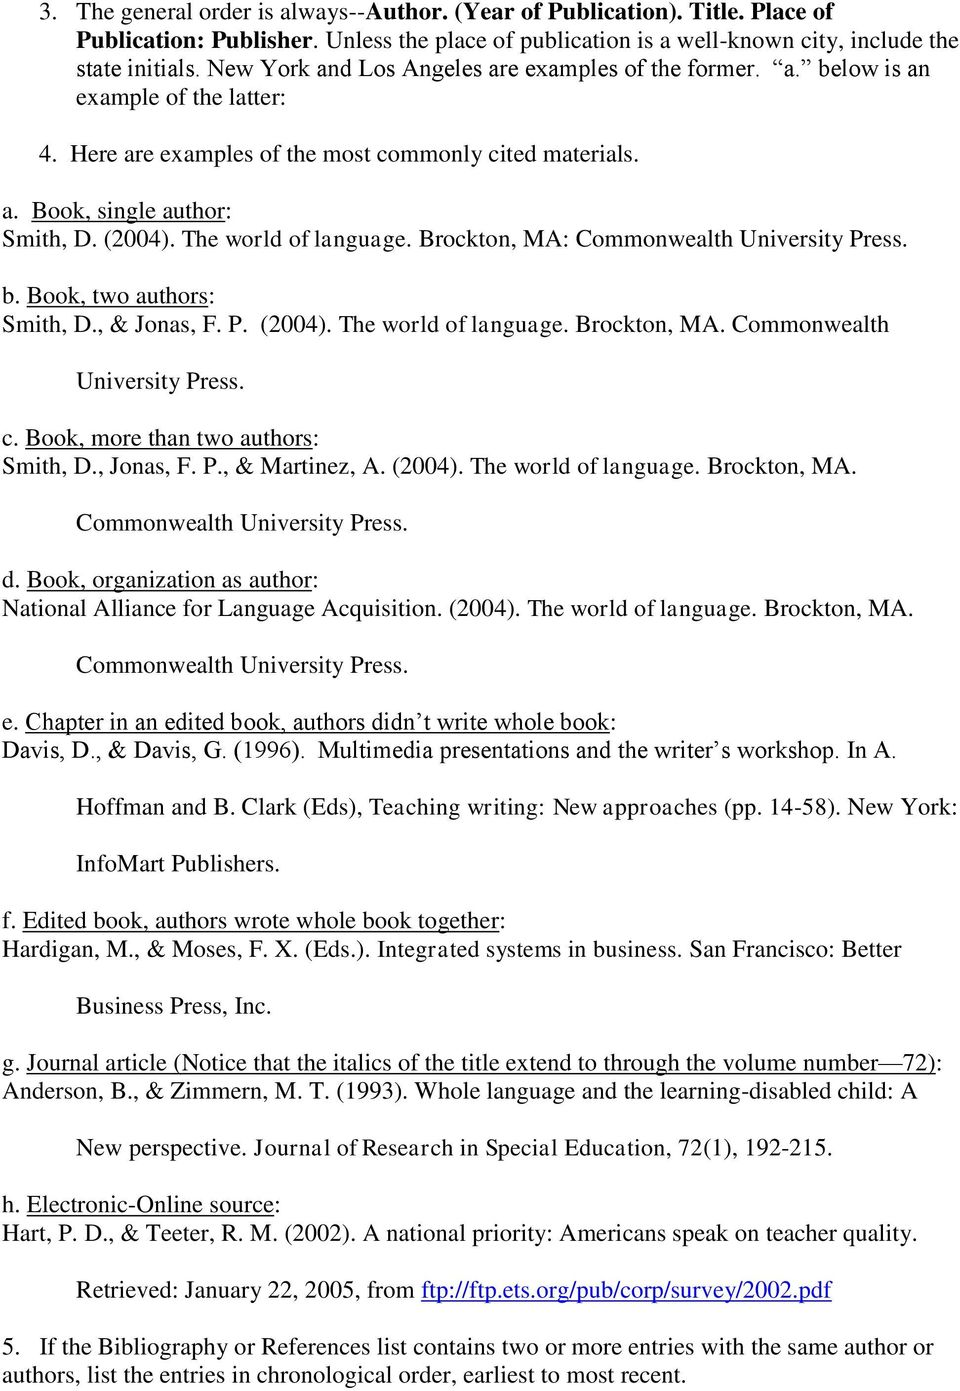 The world of language. Brockton, MA: Commonwealth University Press. b. Book, two authors: Smith, D., & Jonas, F. P. (2004). The world of language. Brockton, MA. Commonwealth University Press. c.